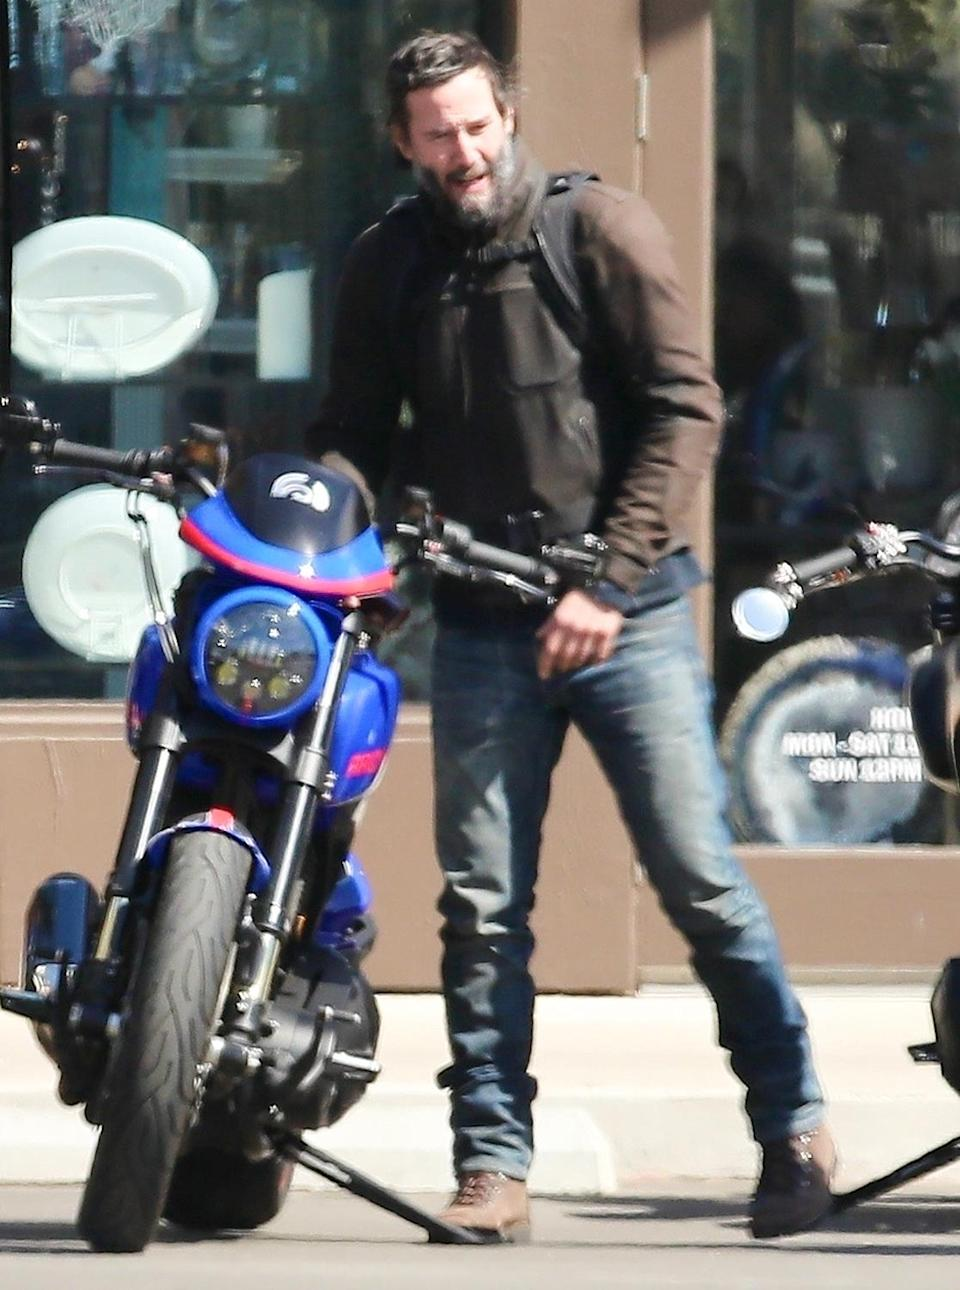 <p>Keanu Reeves chats with other bikers while out with his motorcycle in Malibu on Tuesday.</p>